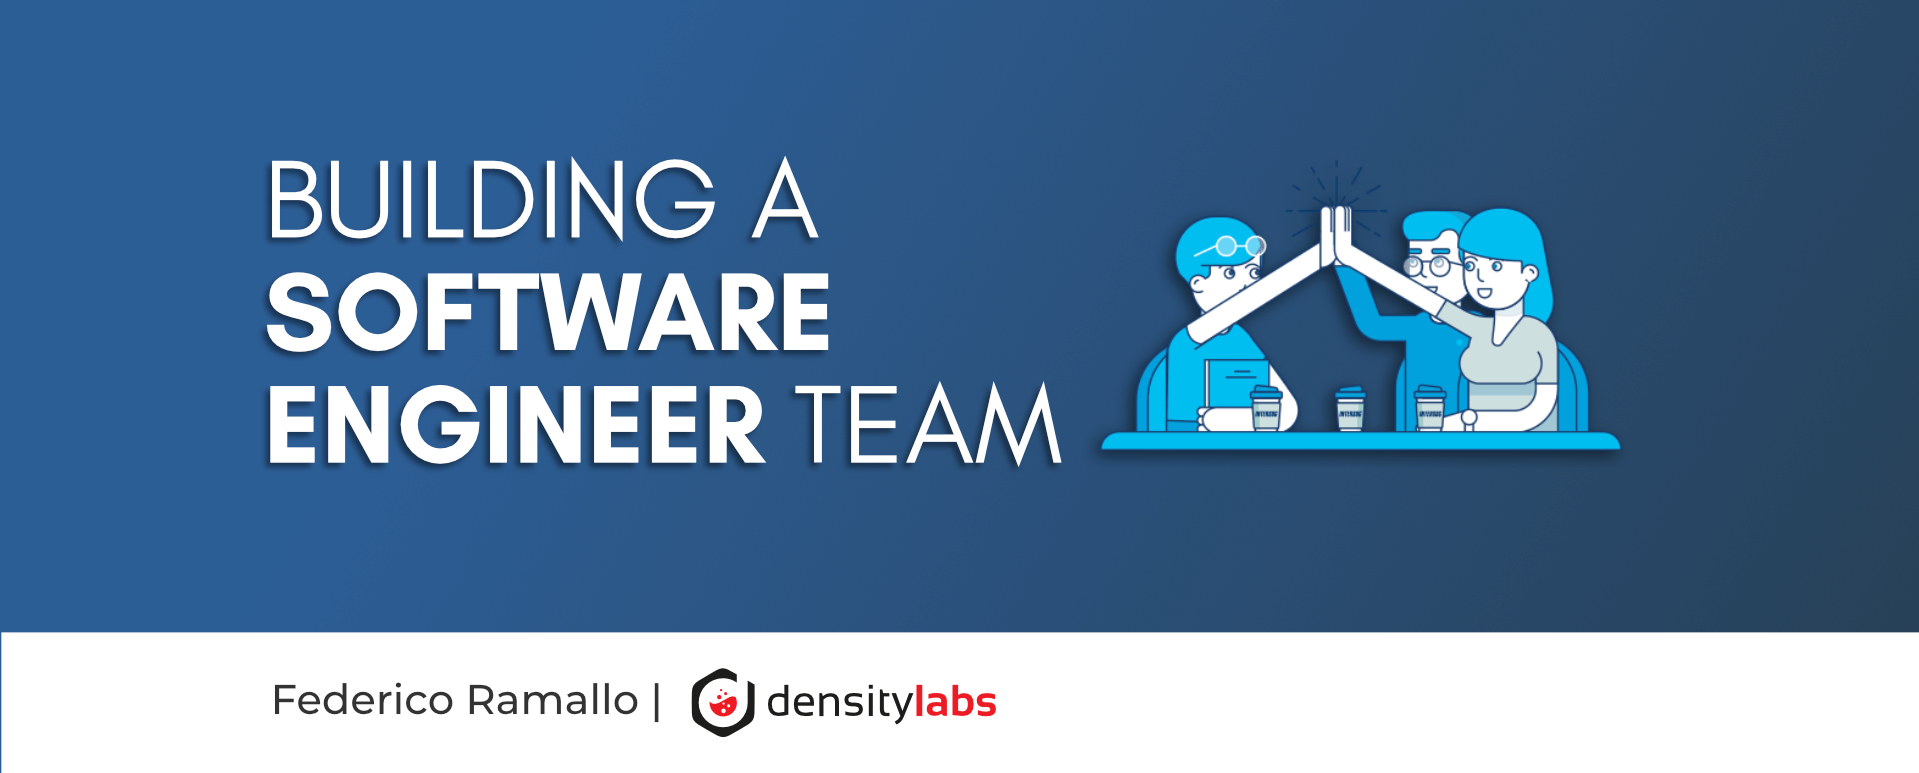 Building a software engineer team